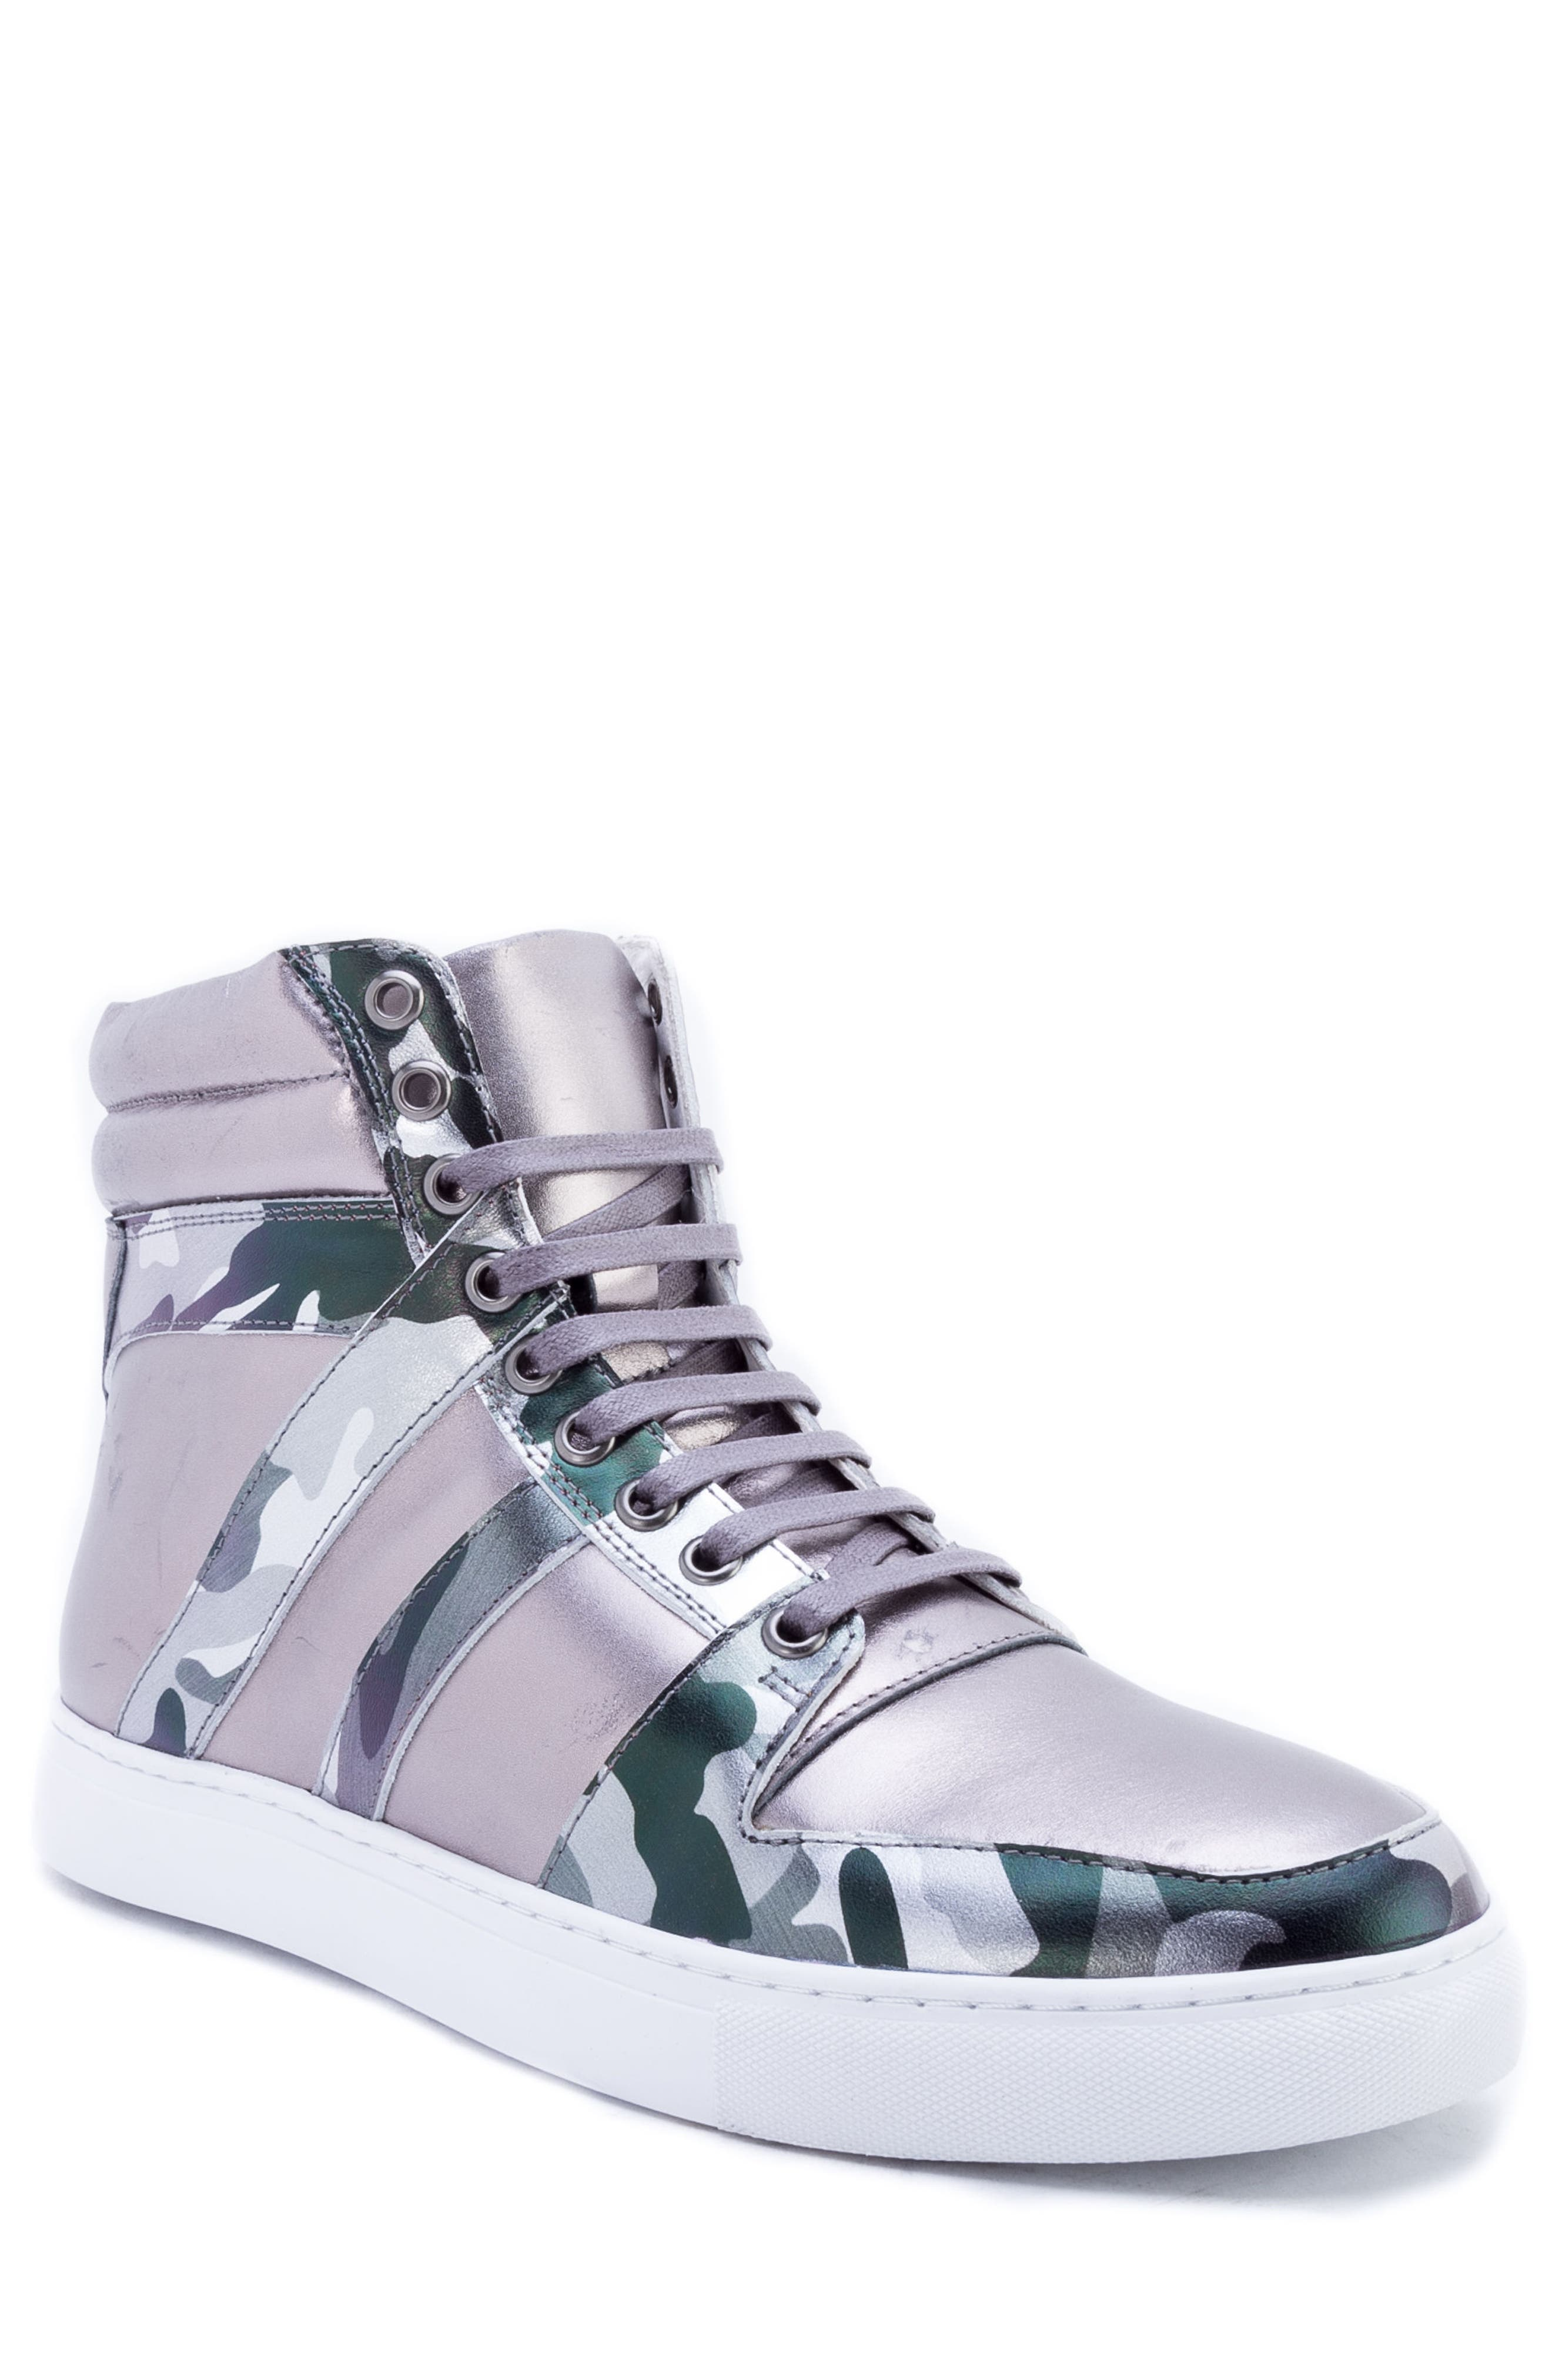 Badgley Mischka Sutherland Sneaker,                         Main,                         color, GREY LEATHER